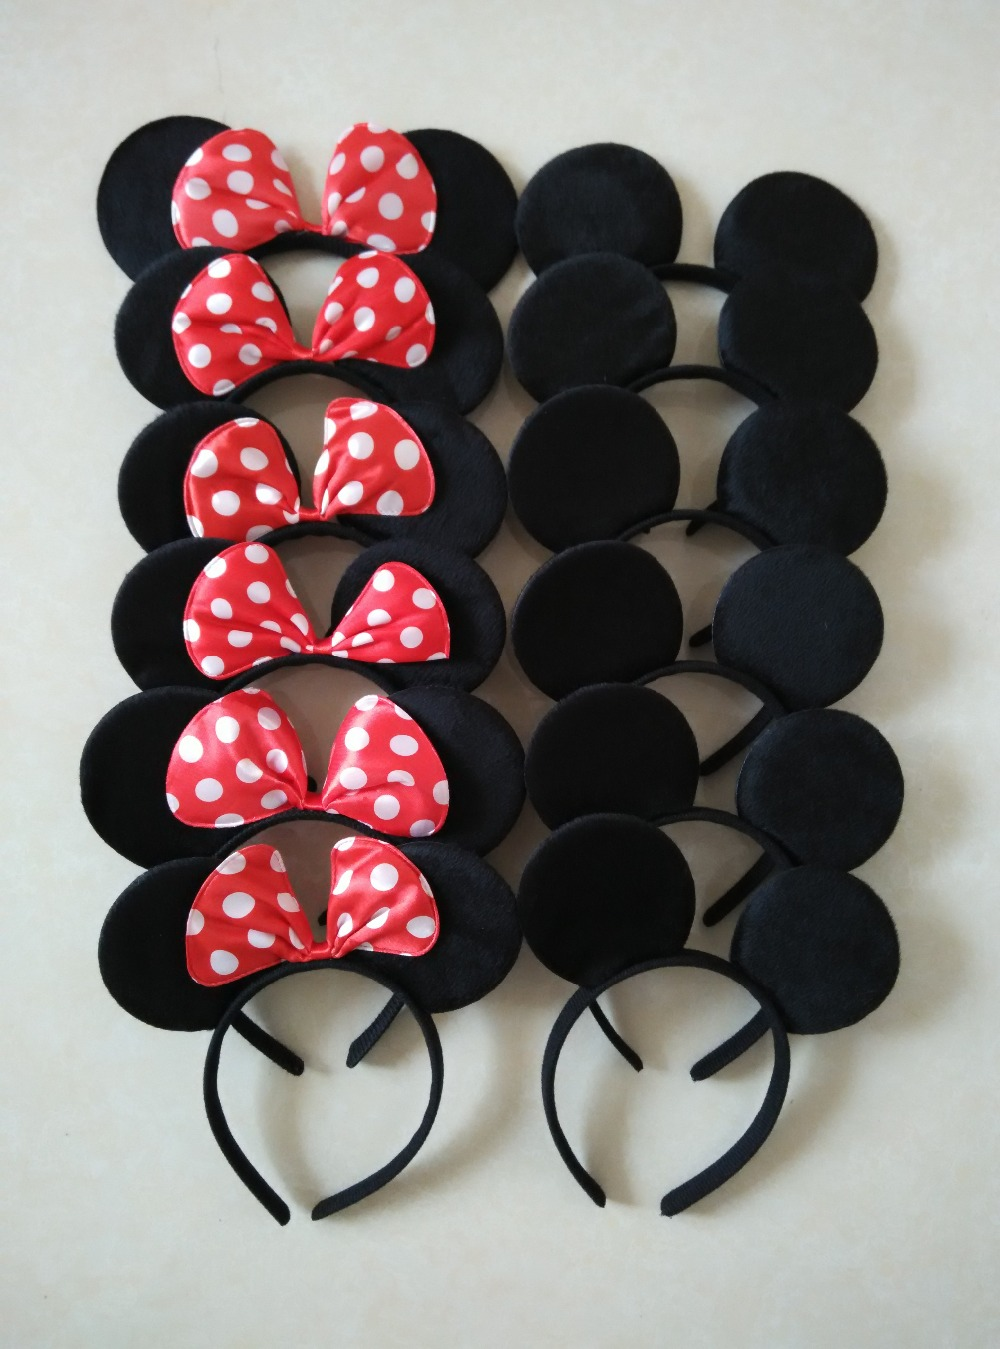 12pcs Hair Accessories Mickey Minnie Mouse Ears Solid Black & Red Bow Headband for Boys and Girls Birthday Party or Celebrations(China (Mainland))